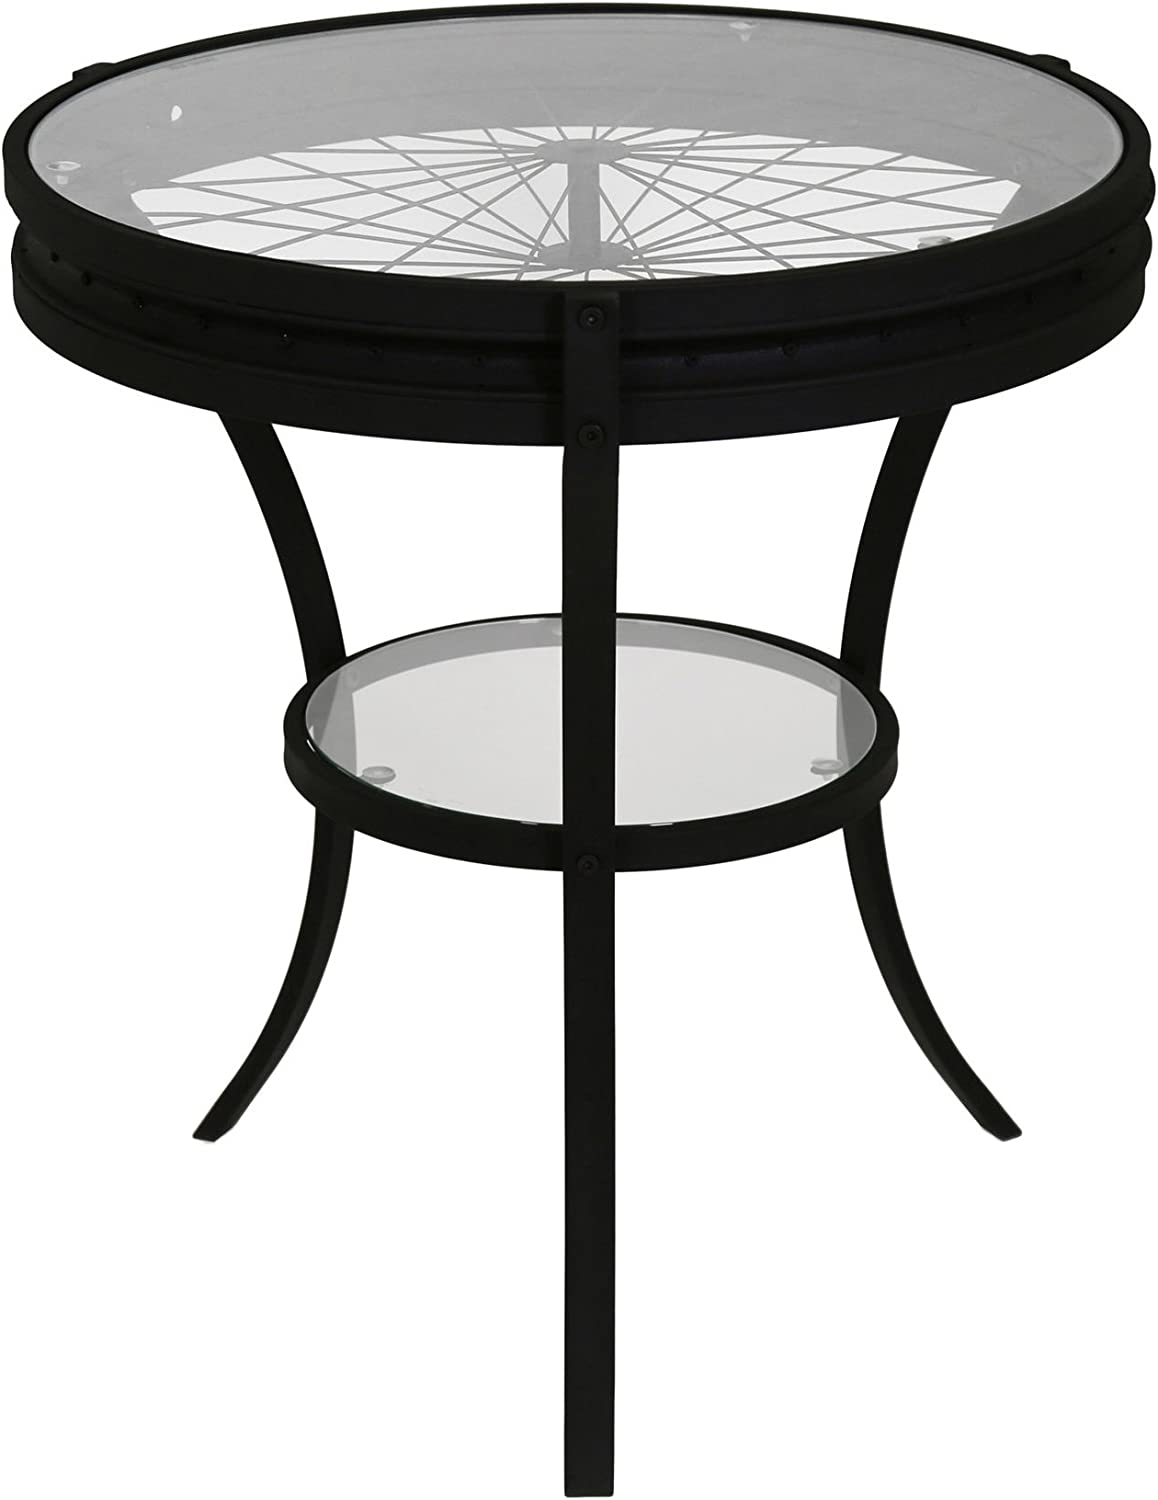 Monarch Specialties I 2140 Hammered Black Accent Table with Tempered Glass, 20